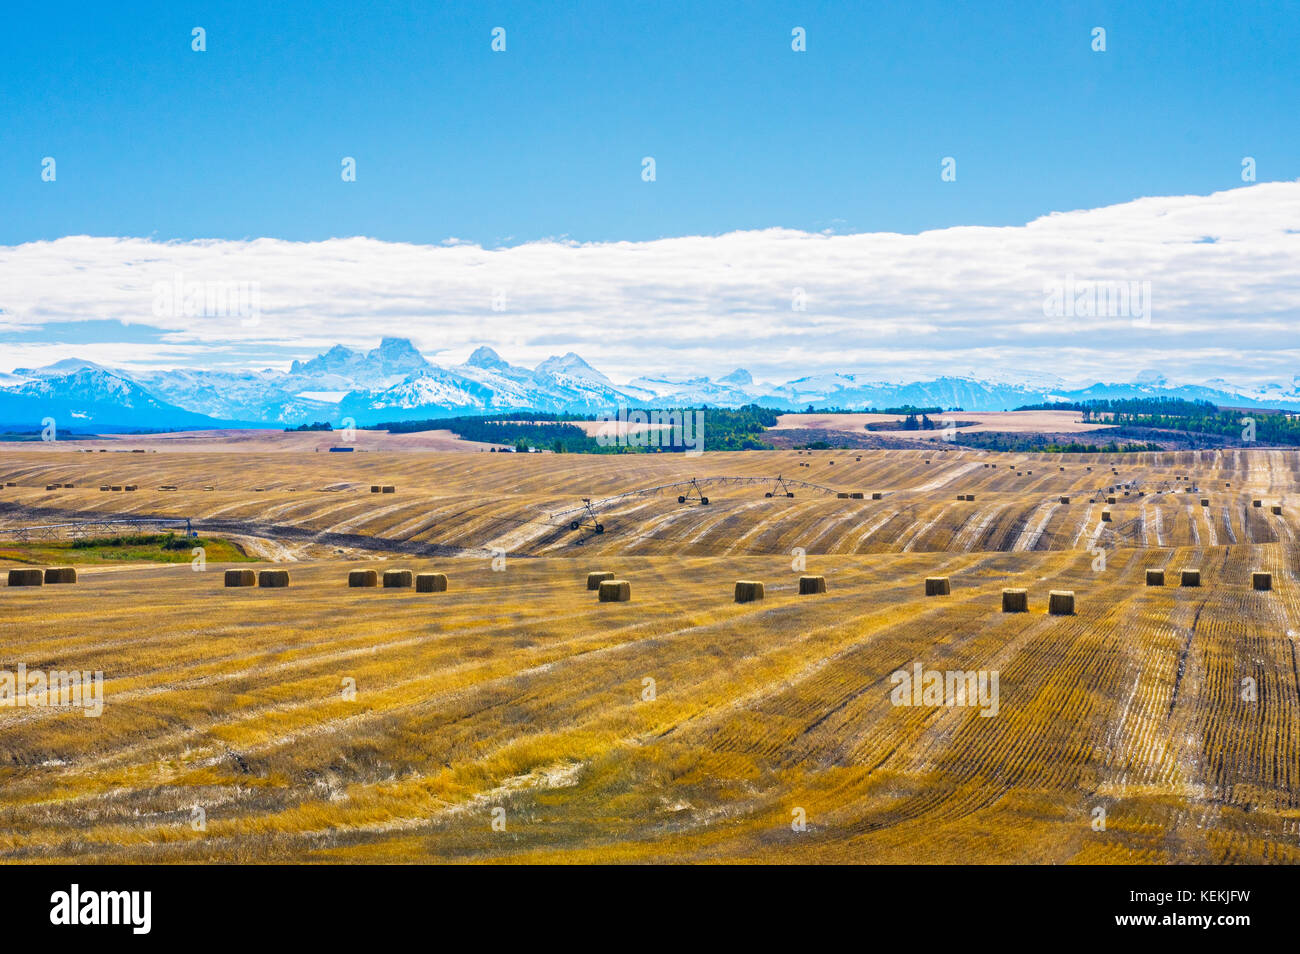 Fields and farm land mark the Idaho landscape for miles with the imposing Grand Teton Mountains in the far off distant - Stock Image